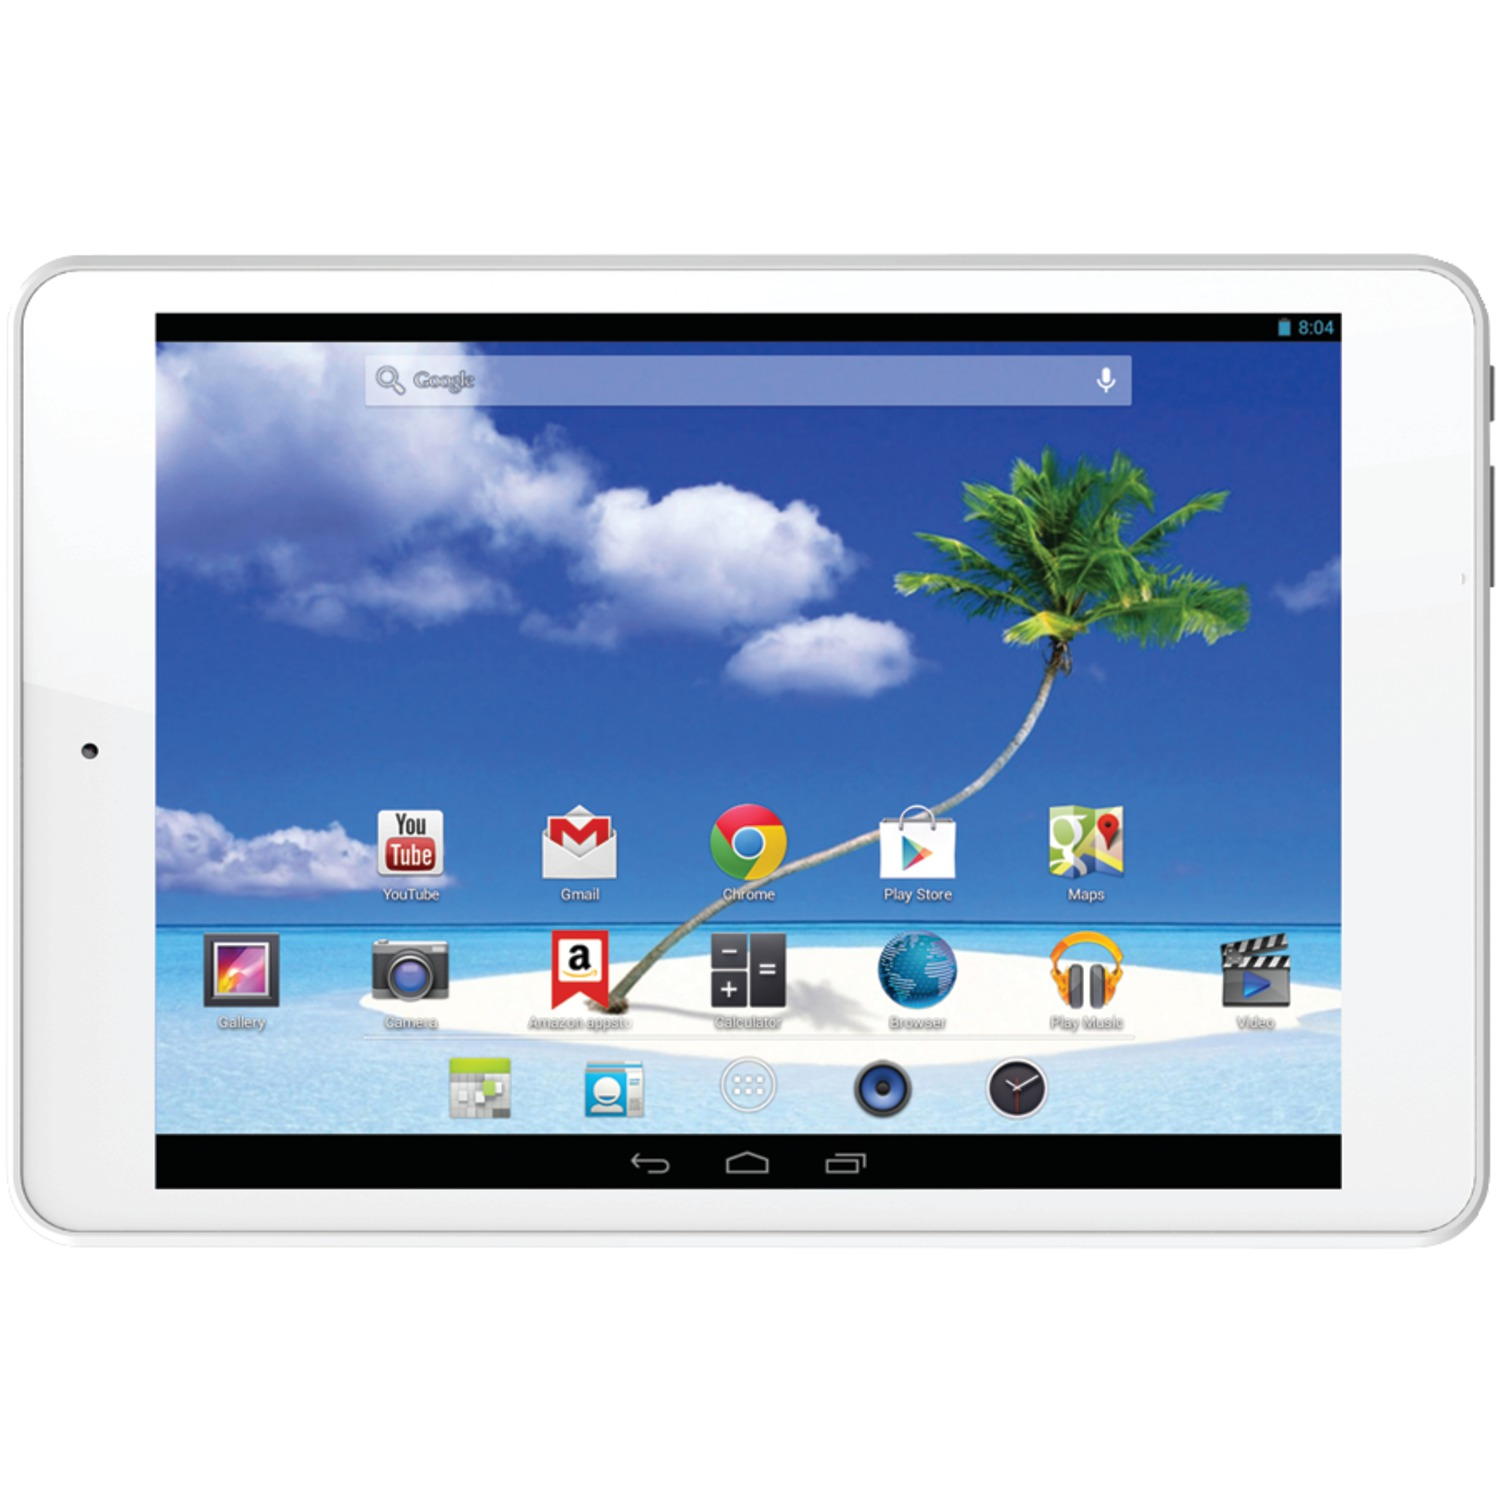 Proscan 7 inch android tablet - 1911 leesburg grove city